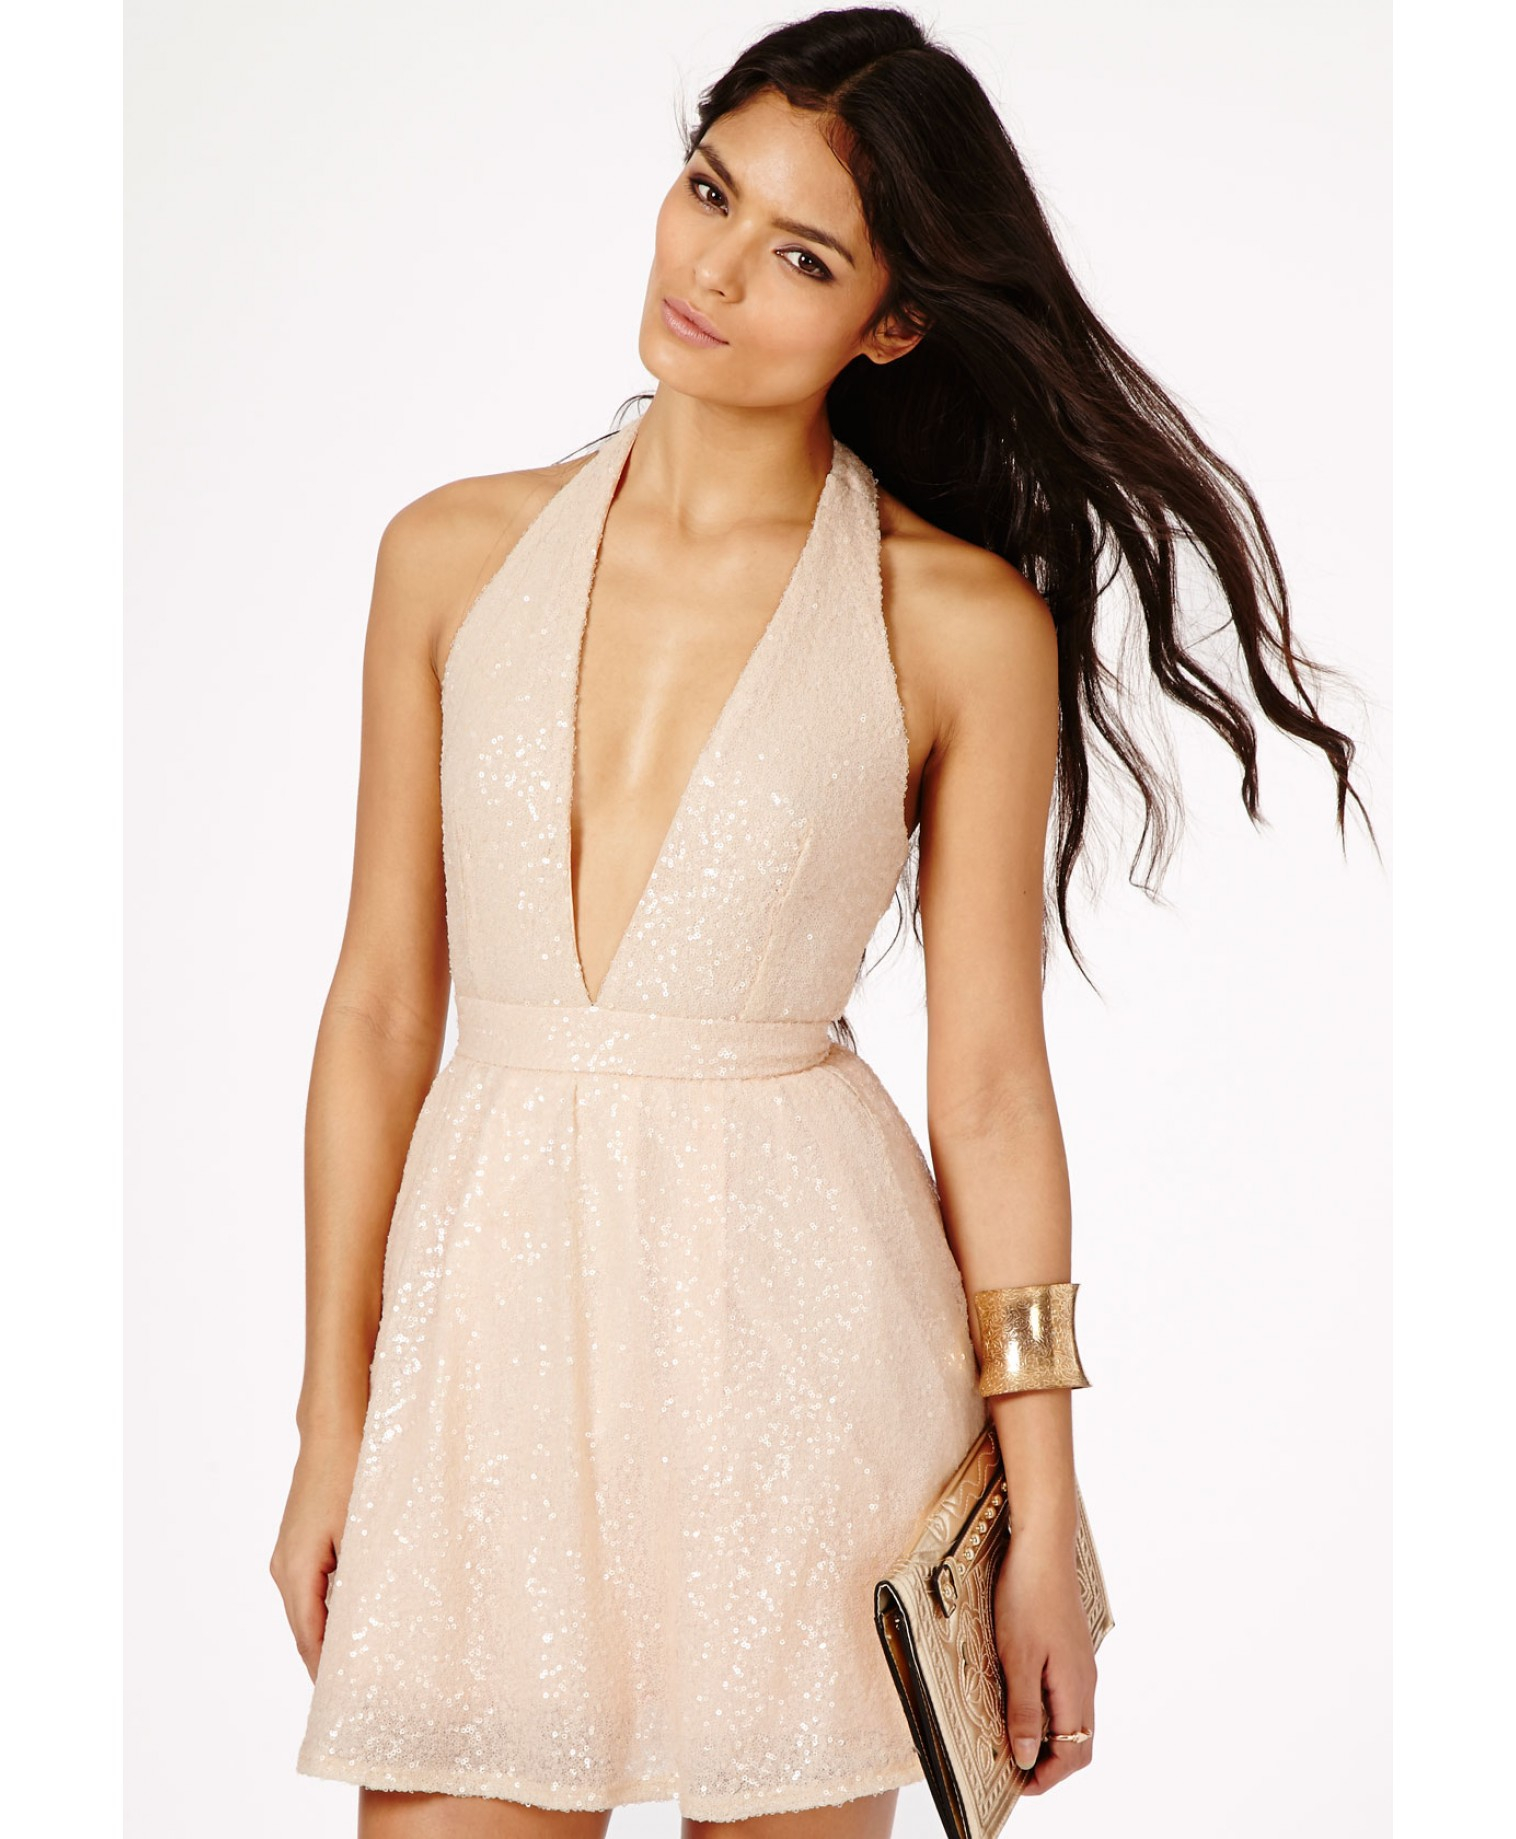 Lyst - Missguided Rika Sequin Halterneck Skater Dress in Nude in Natural b14741422